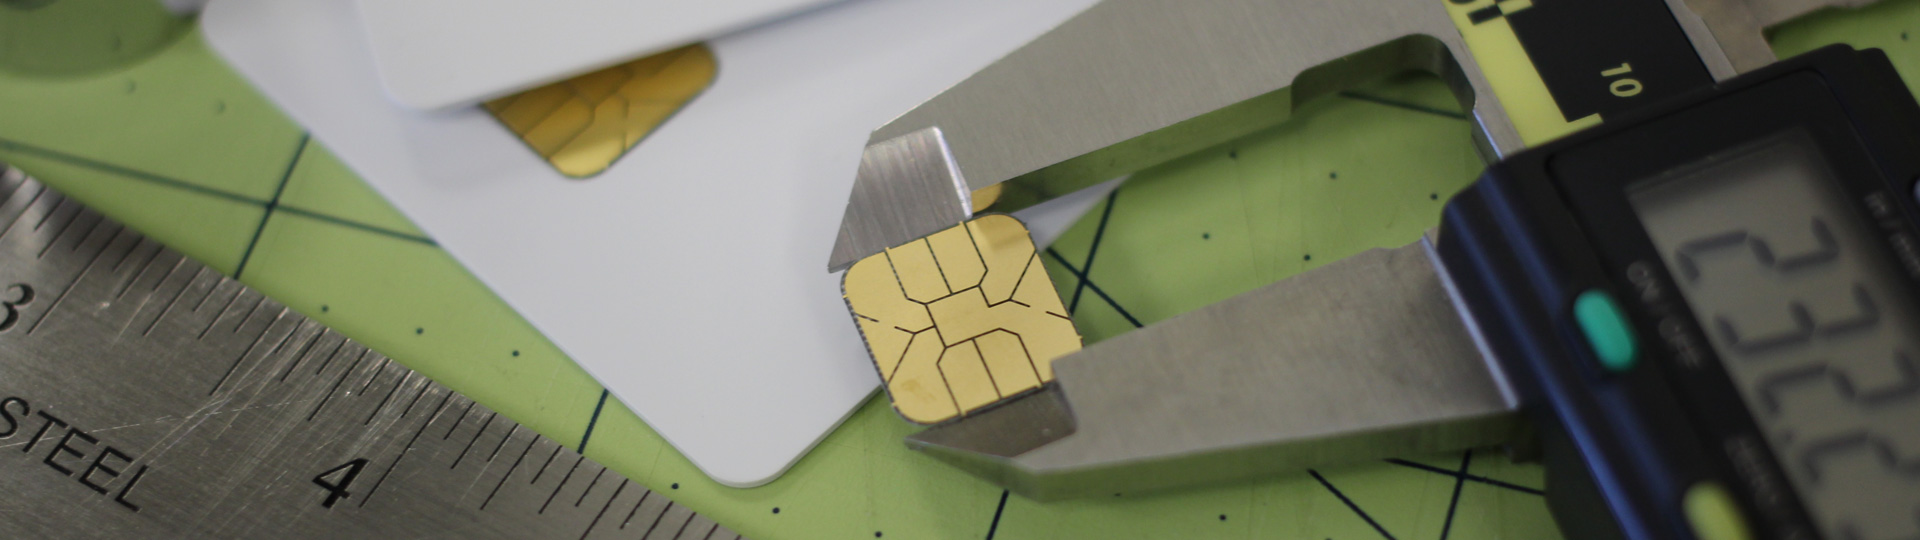 CardLogix smart card manufacturing dedication-to-quality